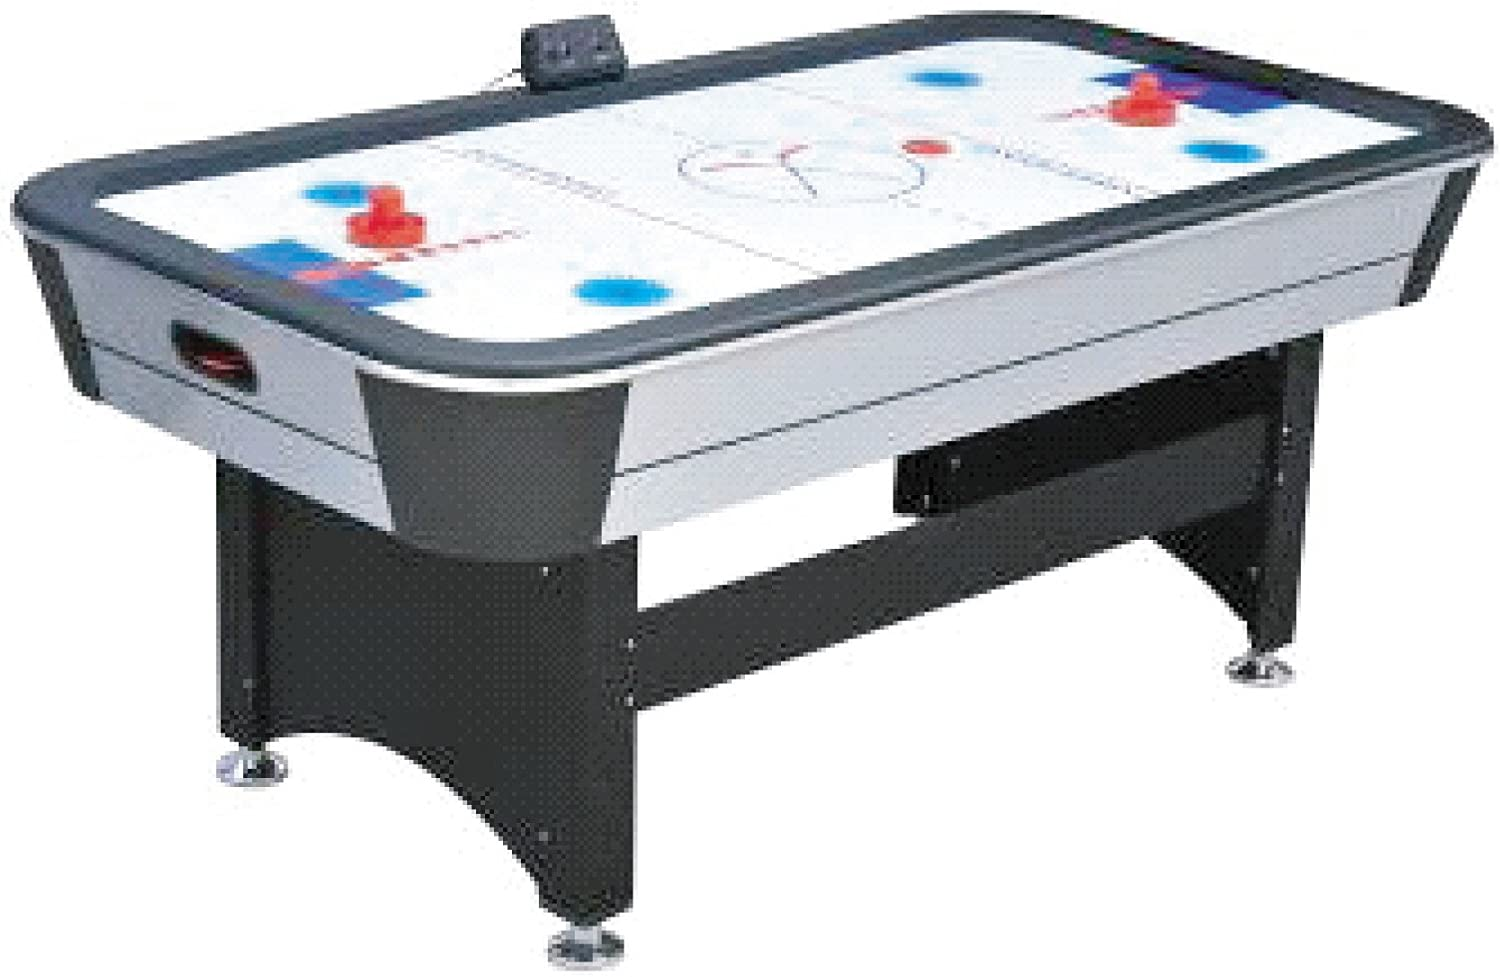 Softee - Mesa Air Hockey Campeonato: Amazon.es: Deportes y aire libre